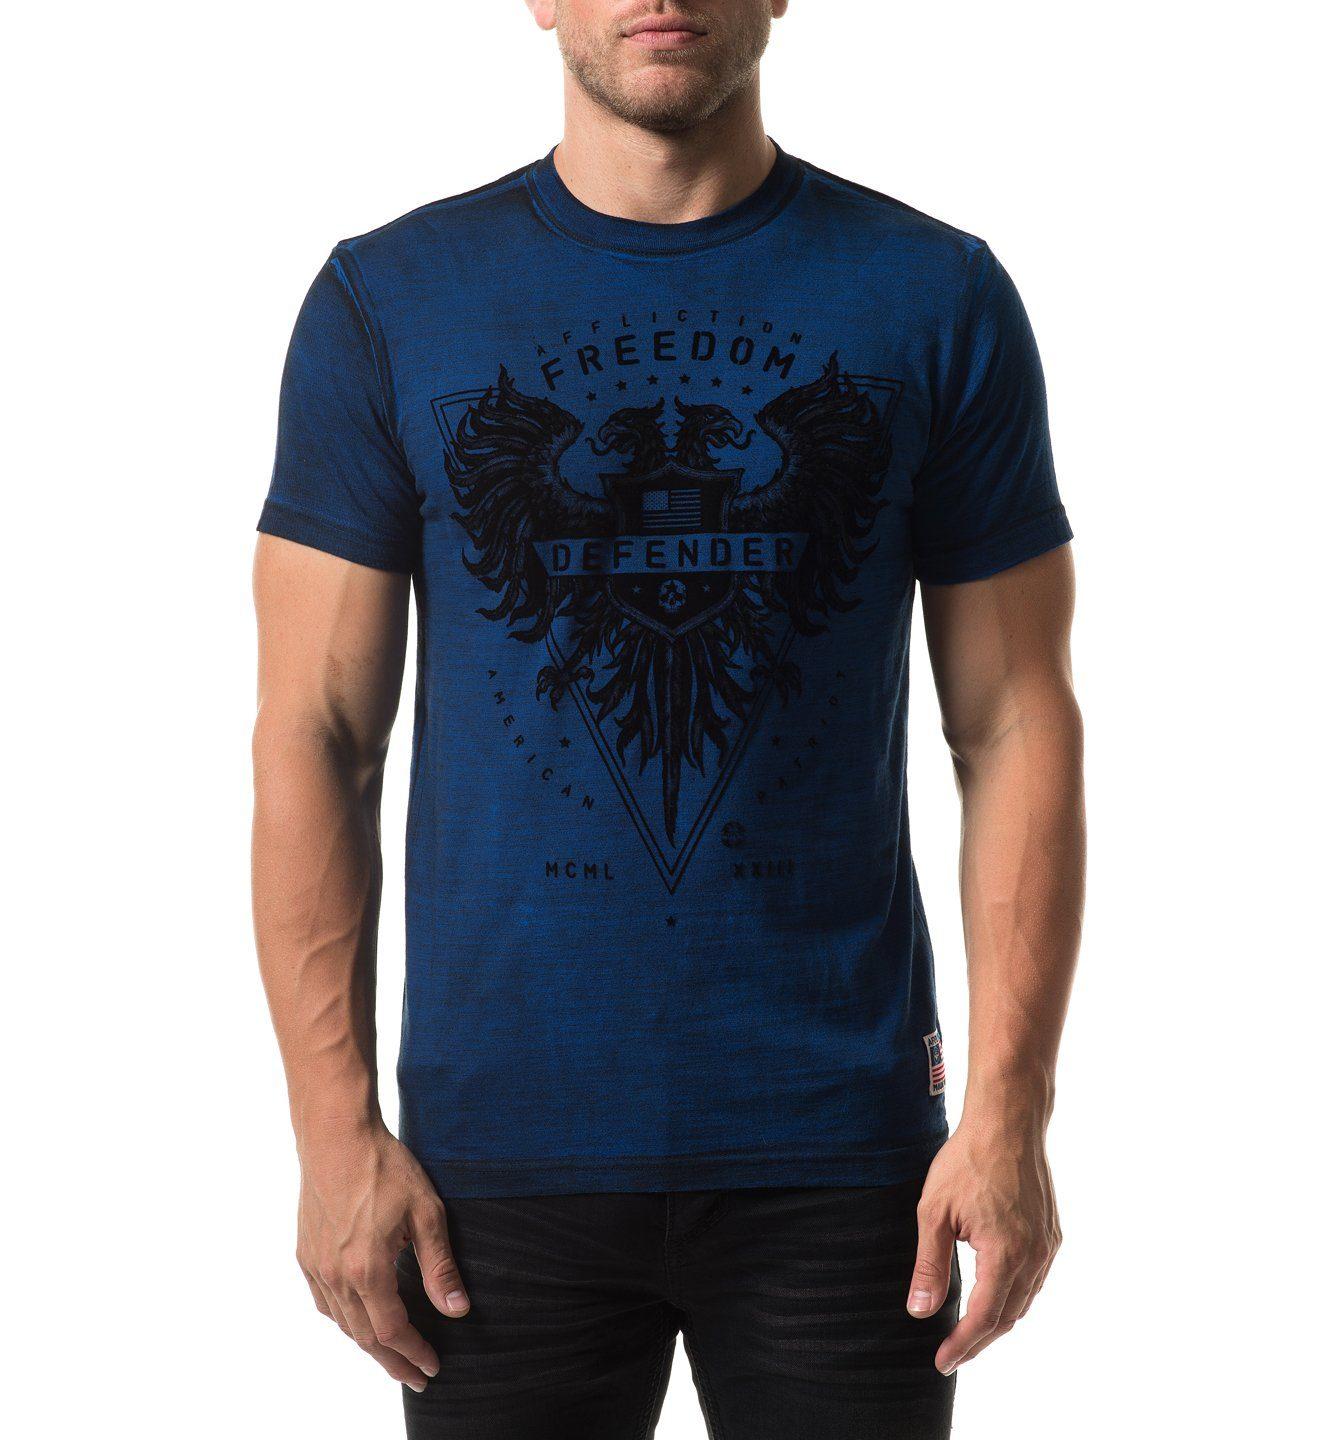 Mens Short Sleeve Tees - Usa Freedom